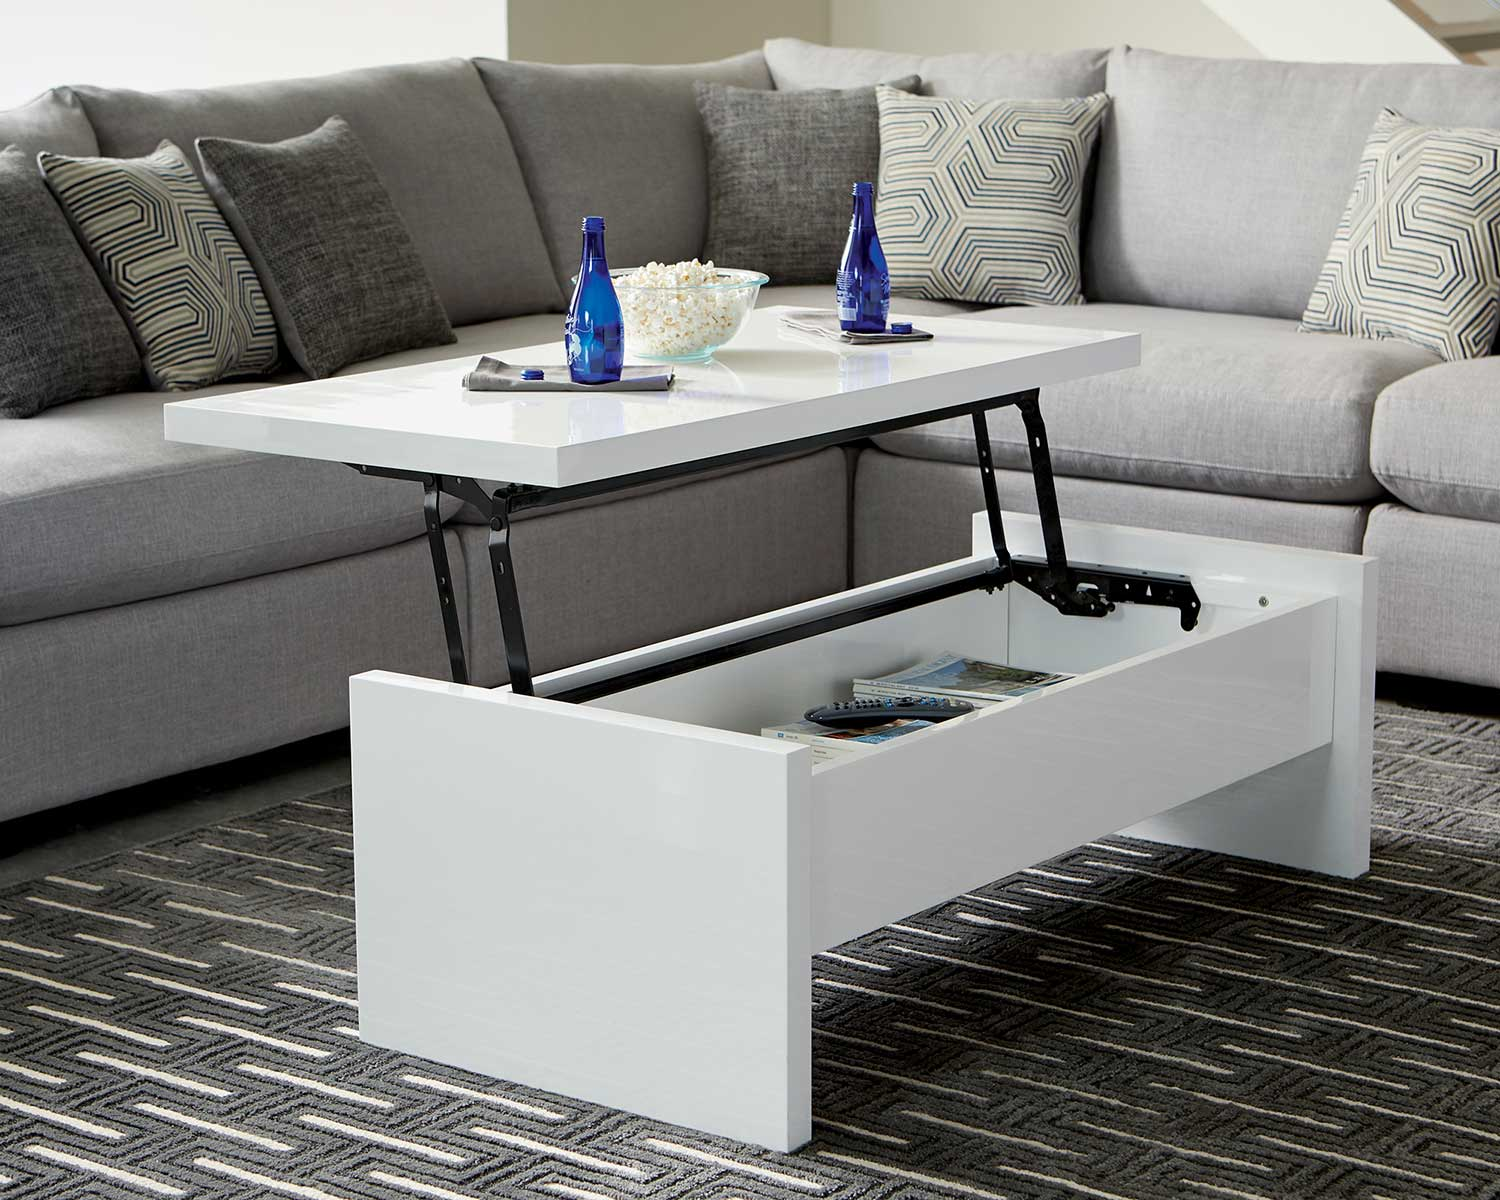 Coaster Charlotte Coffee Table - White